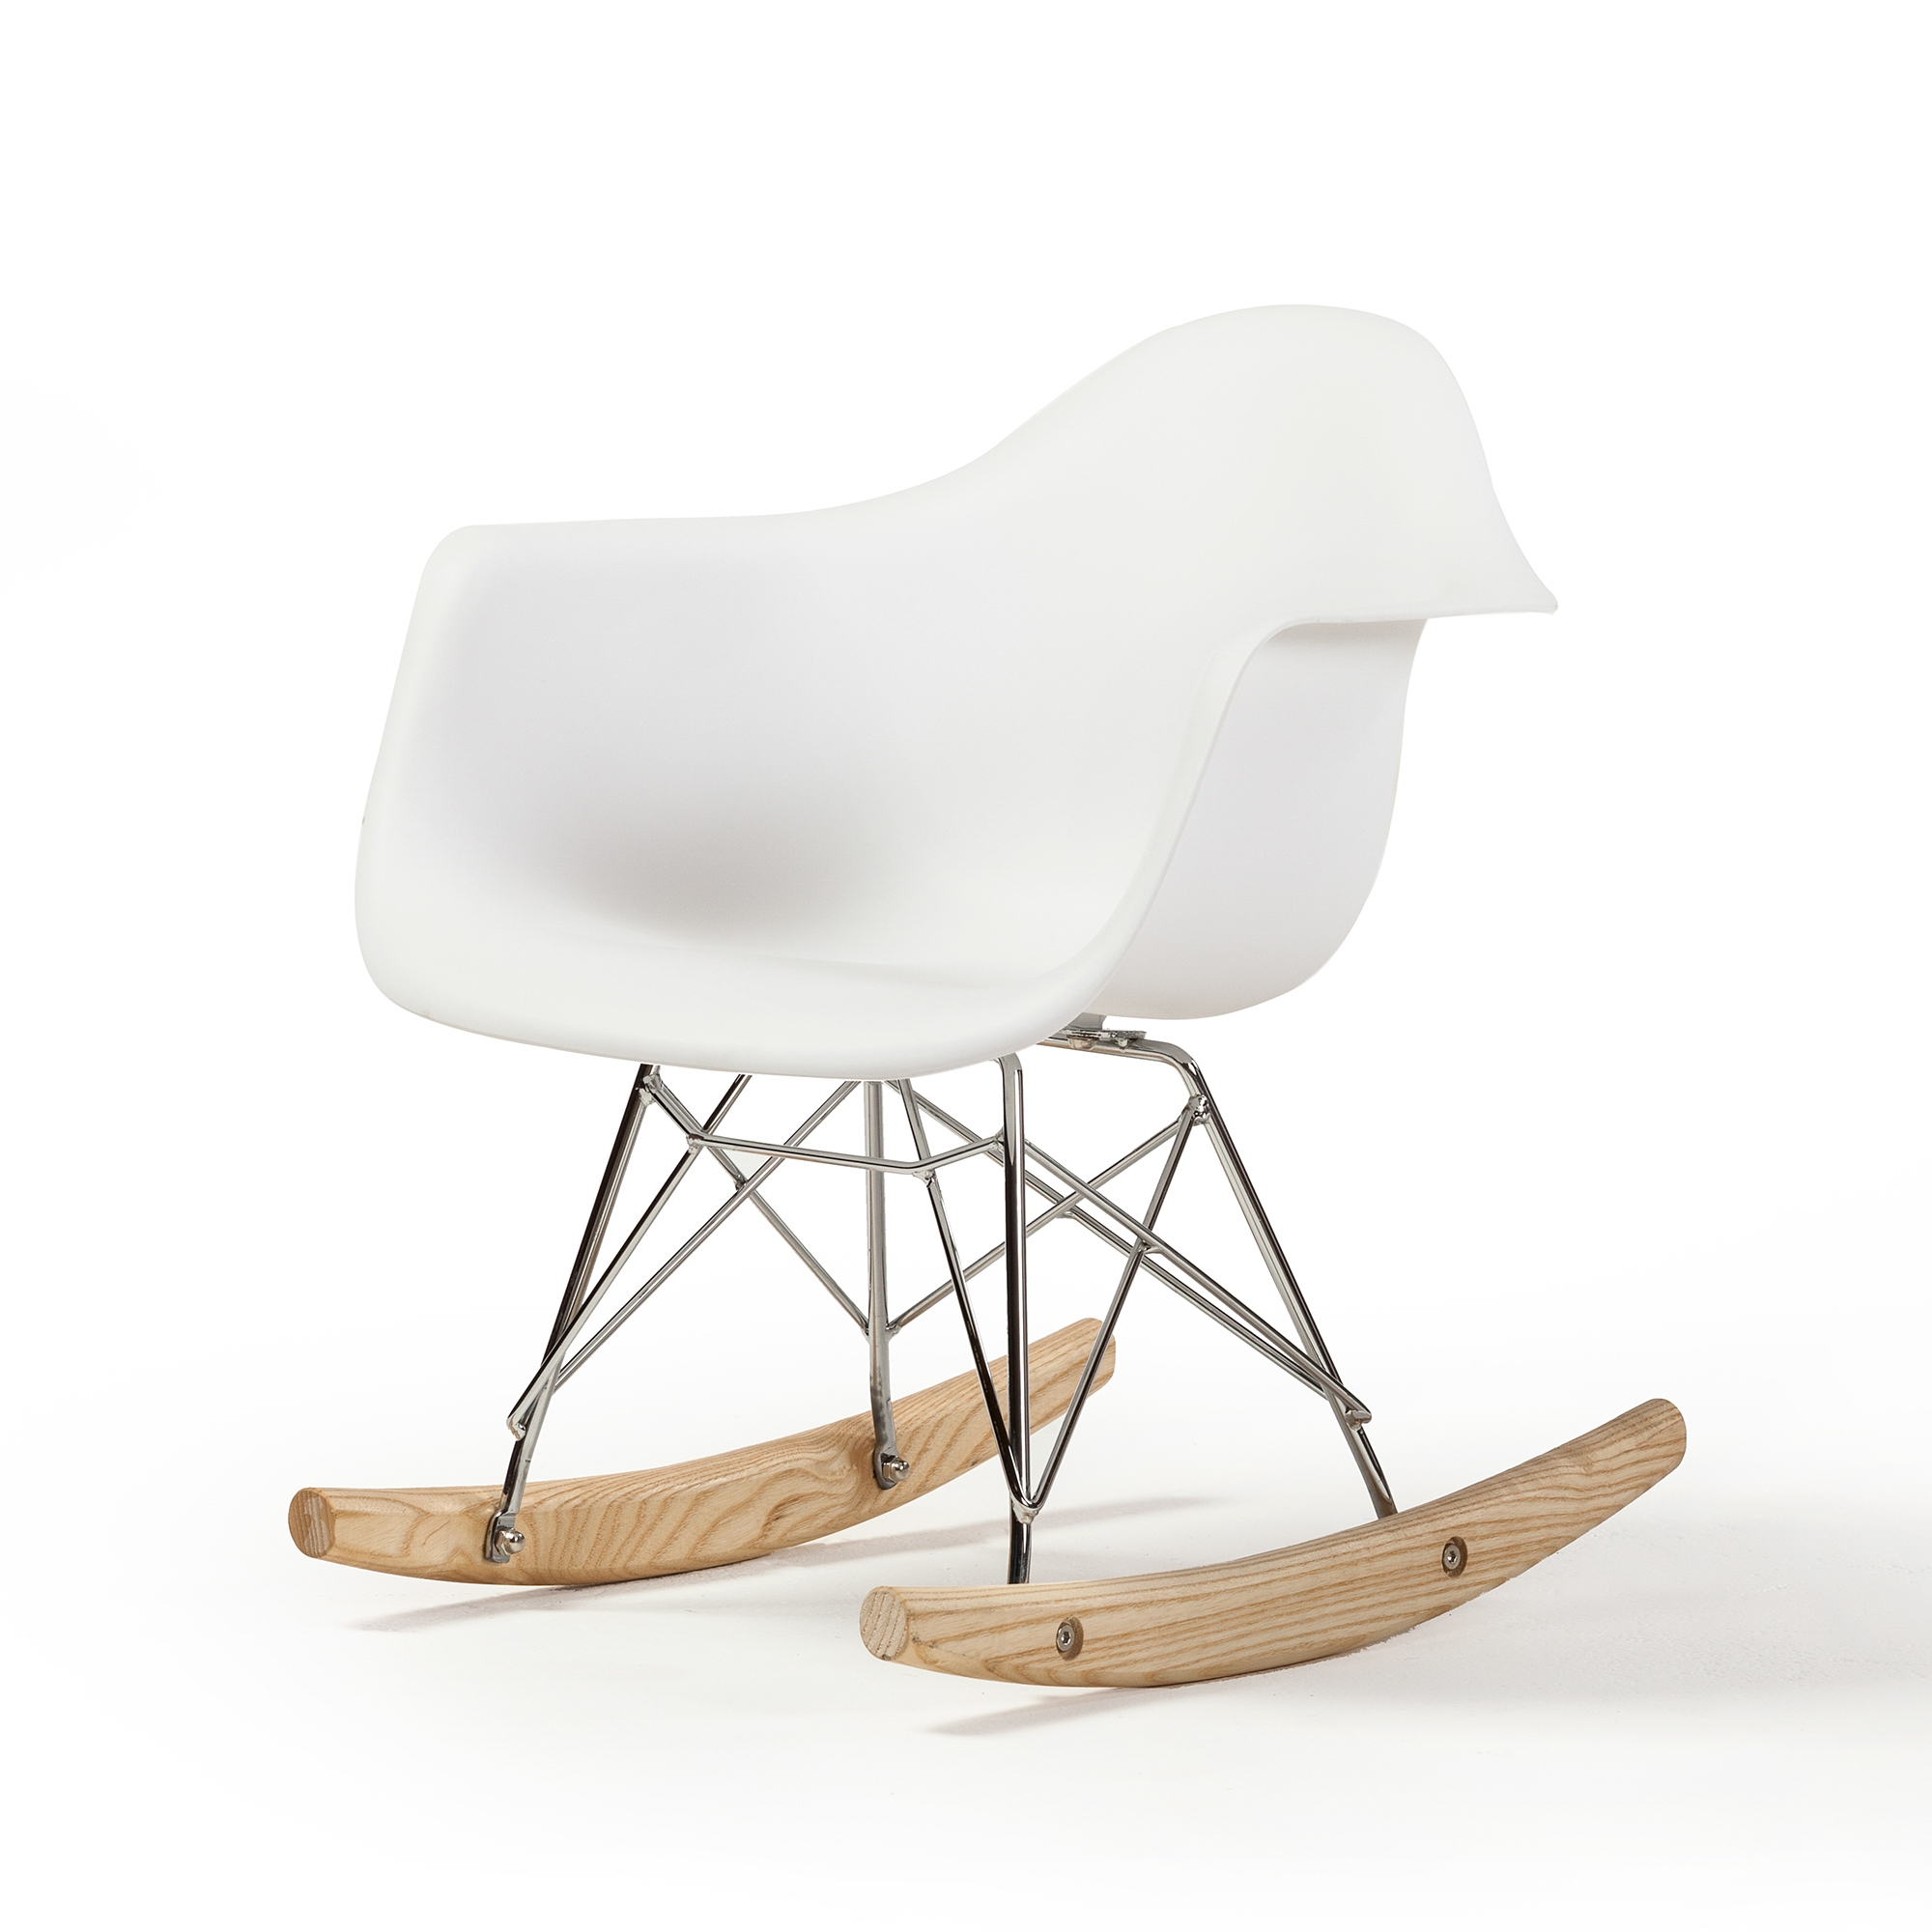 Eames Rar Molded Mid Century Children S Rocking Chair In White